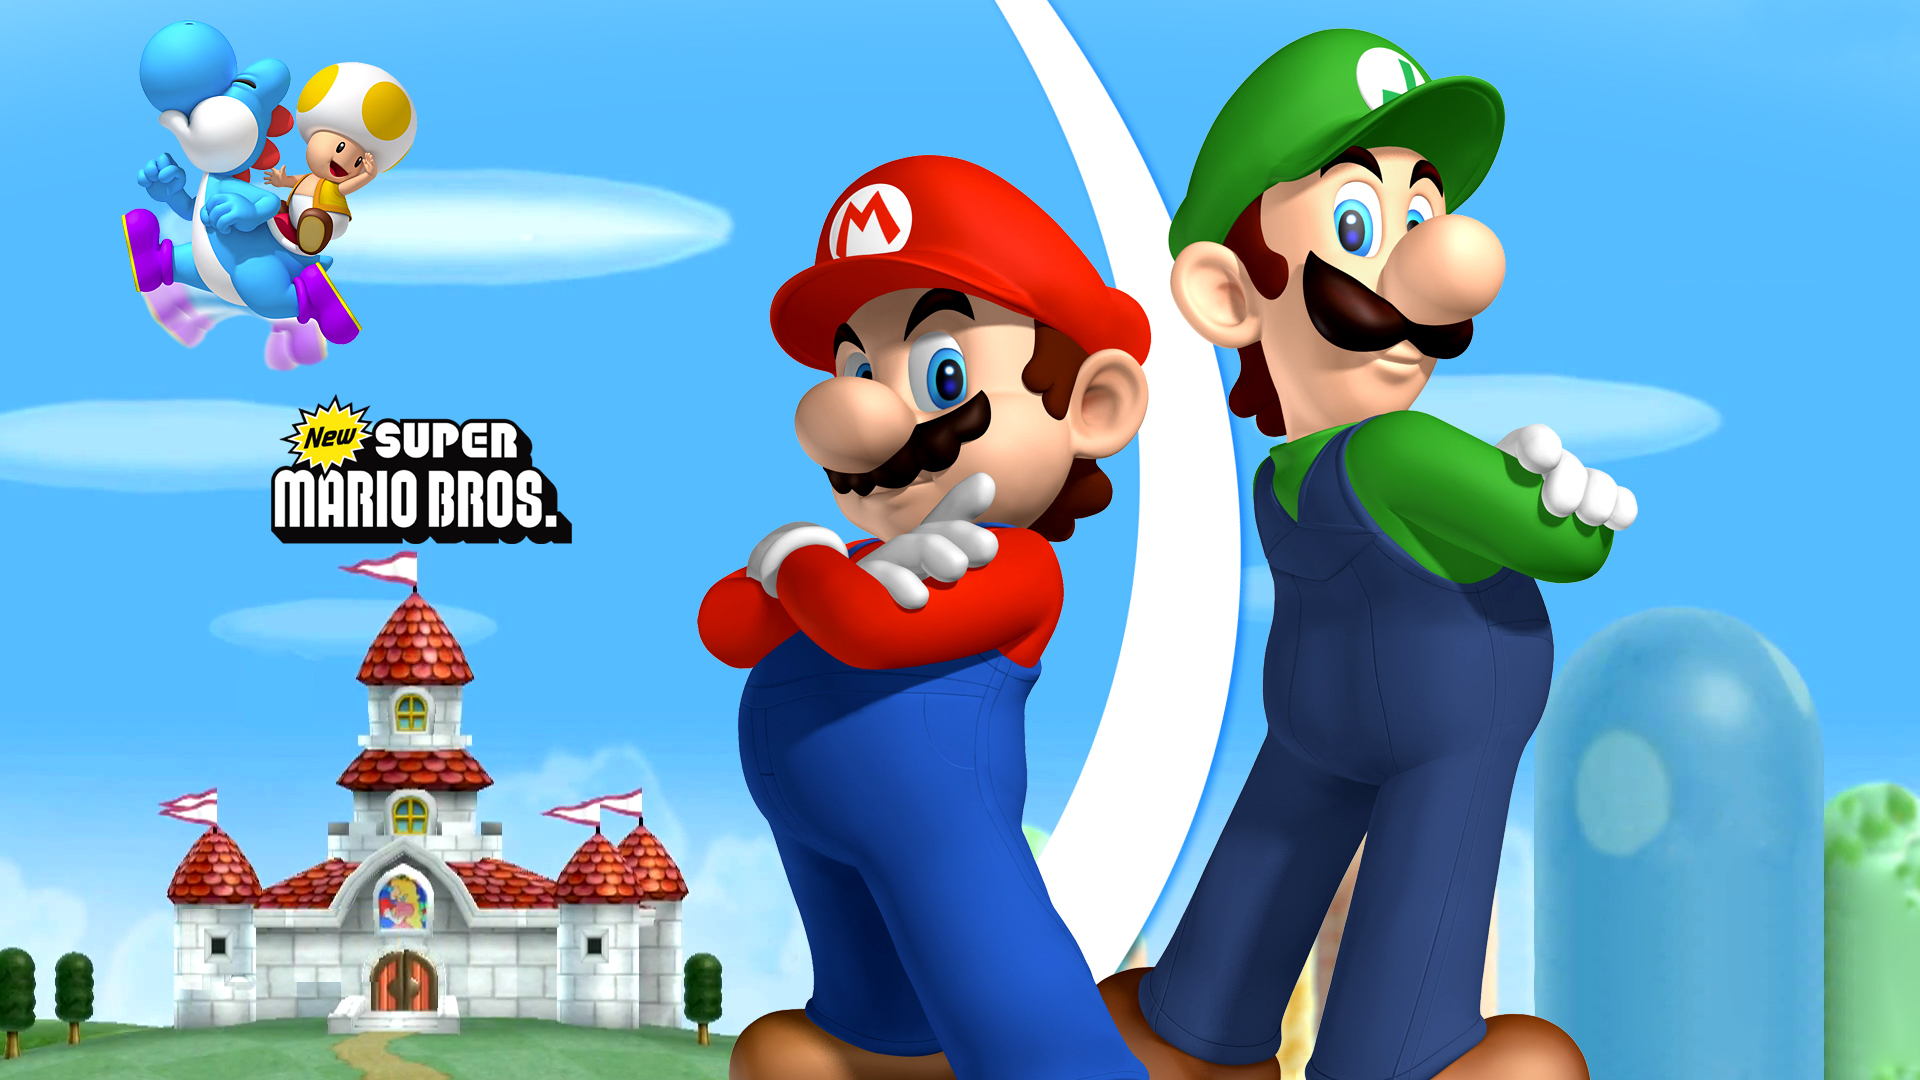 Papel Parede Mario ~ New Super Mario Bros Wii Full HD Papel de Parede and Planos de Fundo 1920×1080 ID 739608